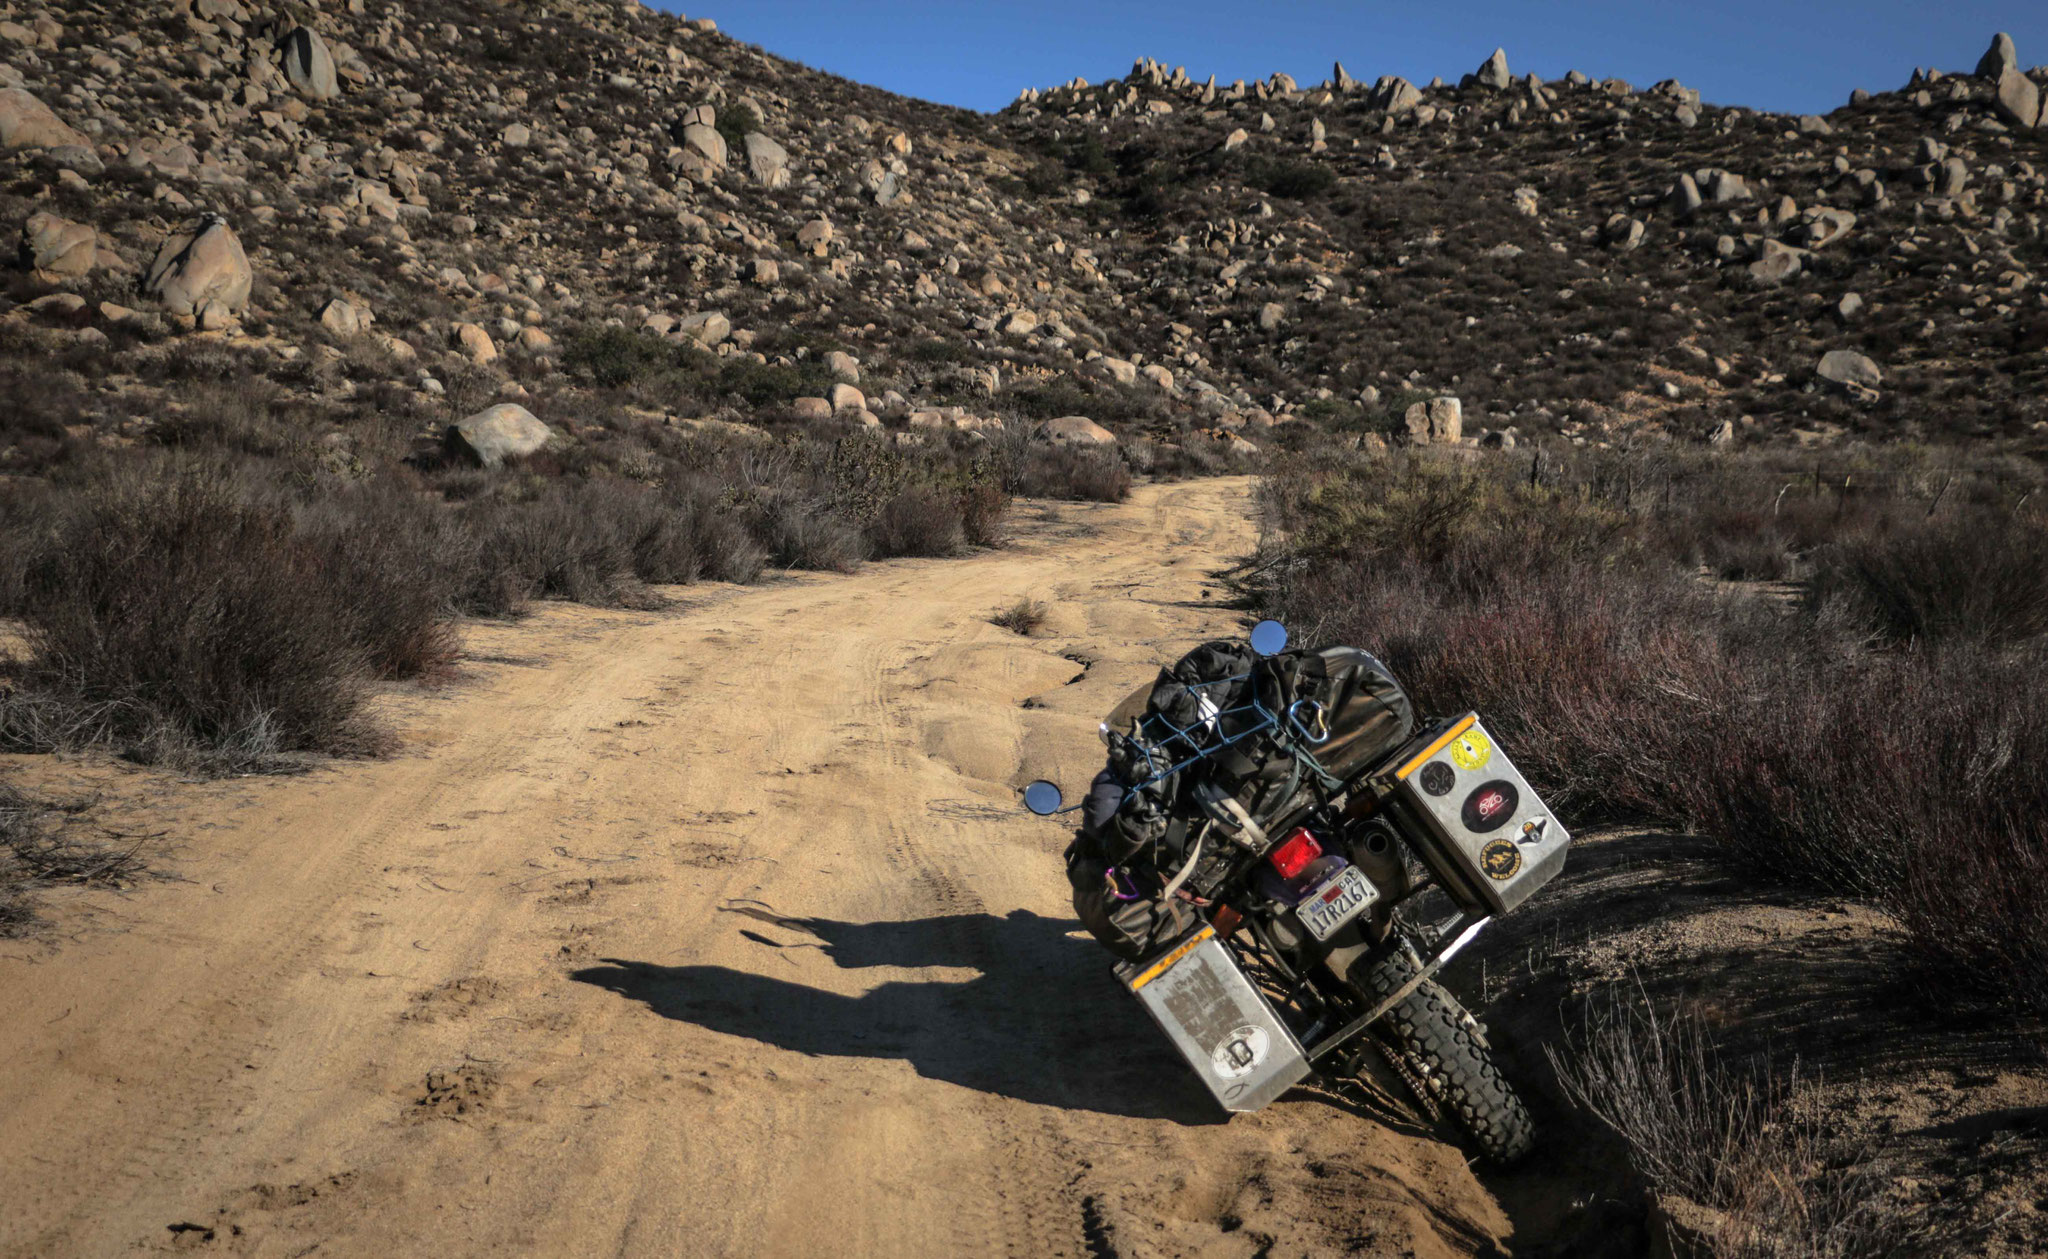 Offroad in Baja California